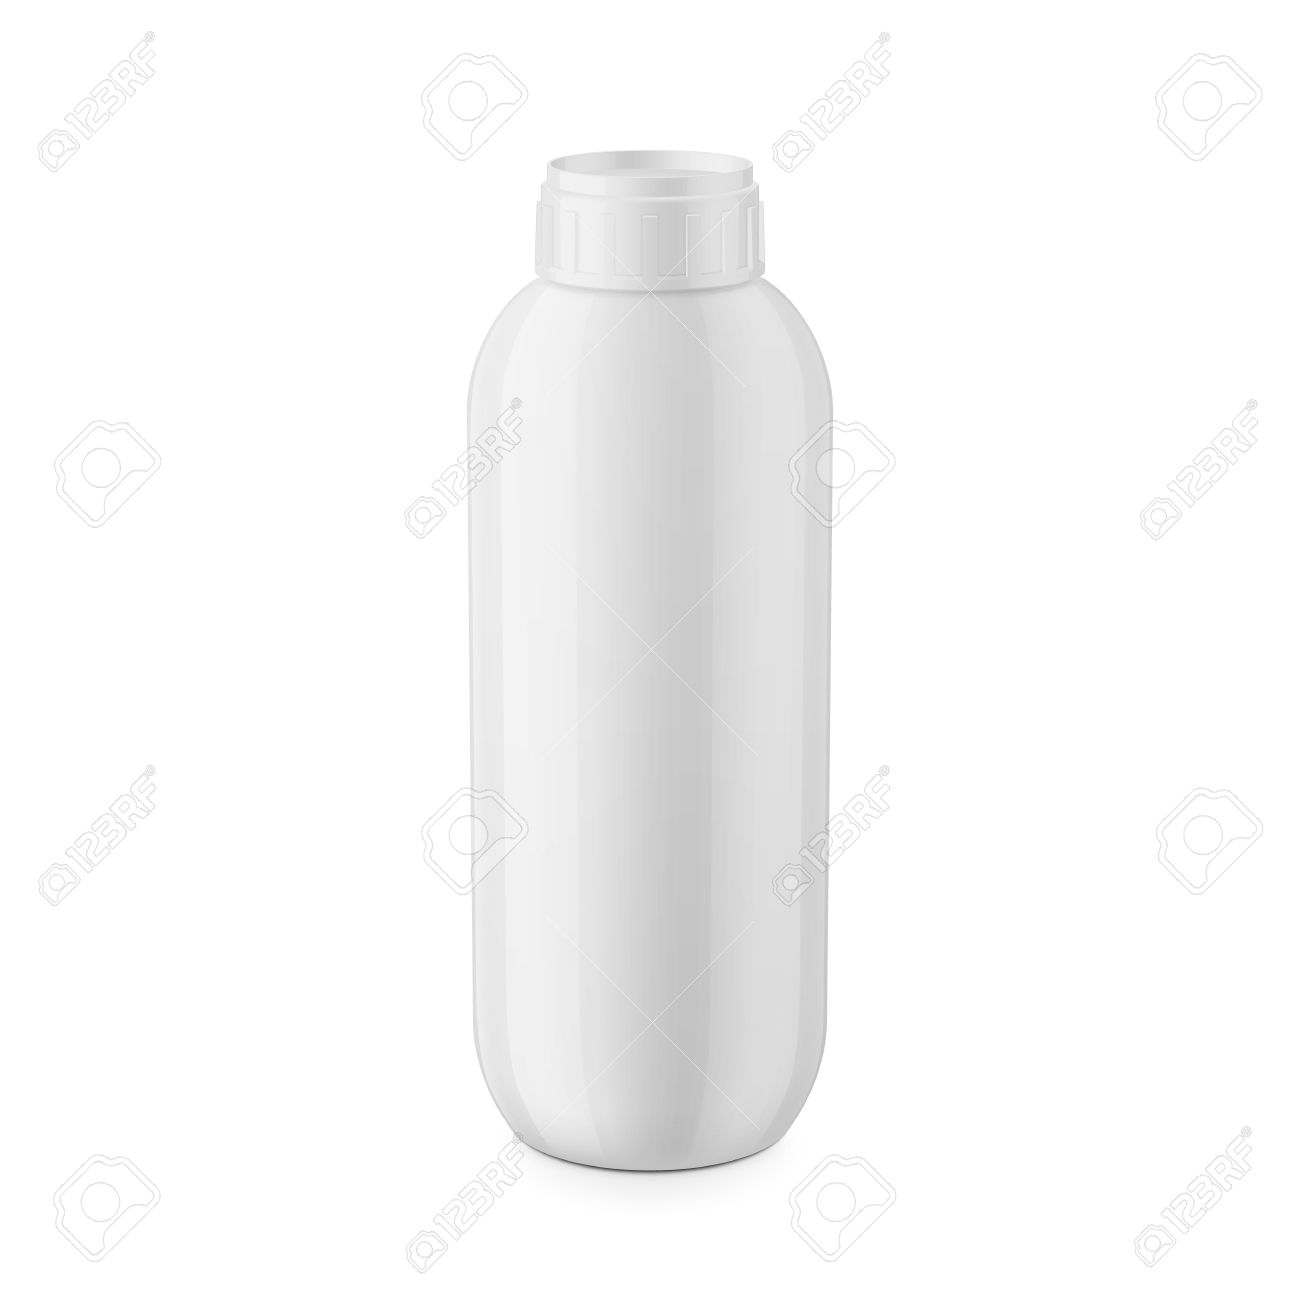 Round White Glossy Plastic Bottle With Cap For Shampoo Balm Shower